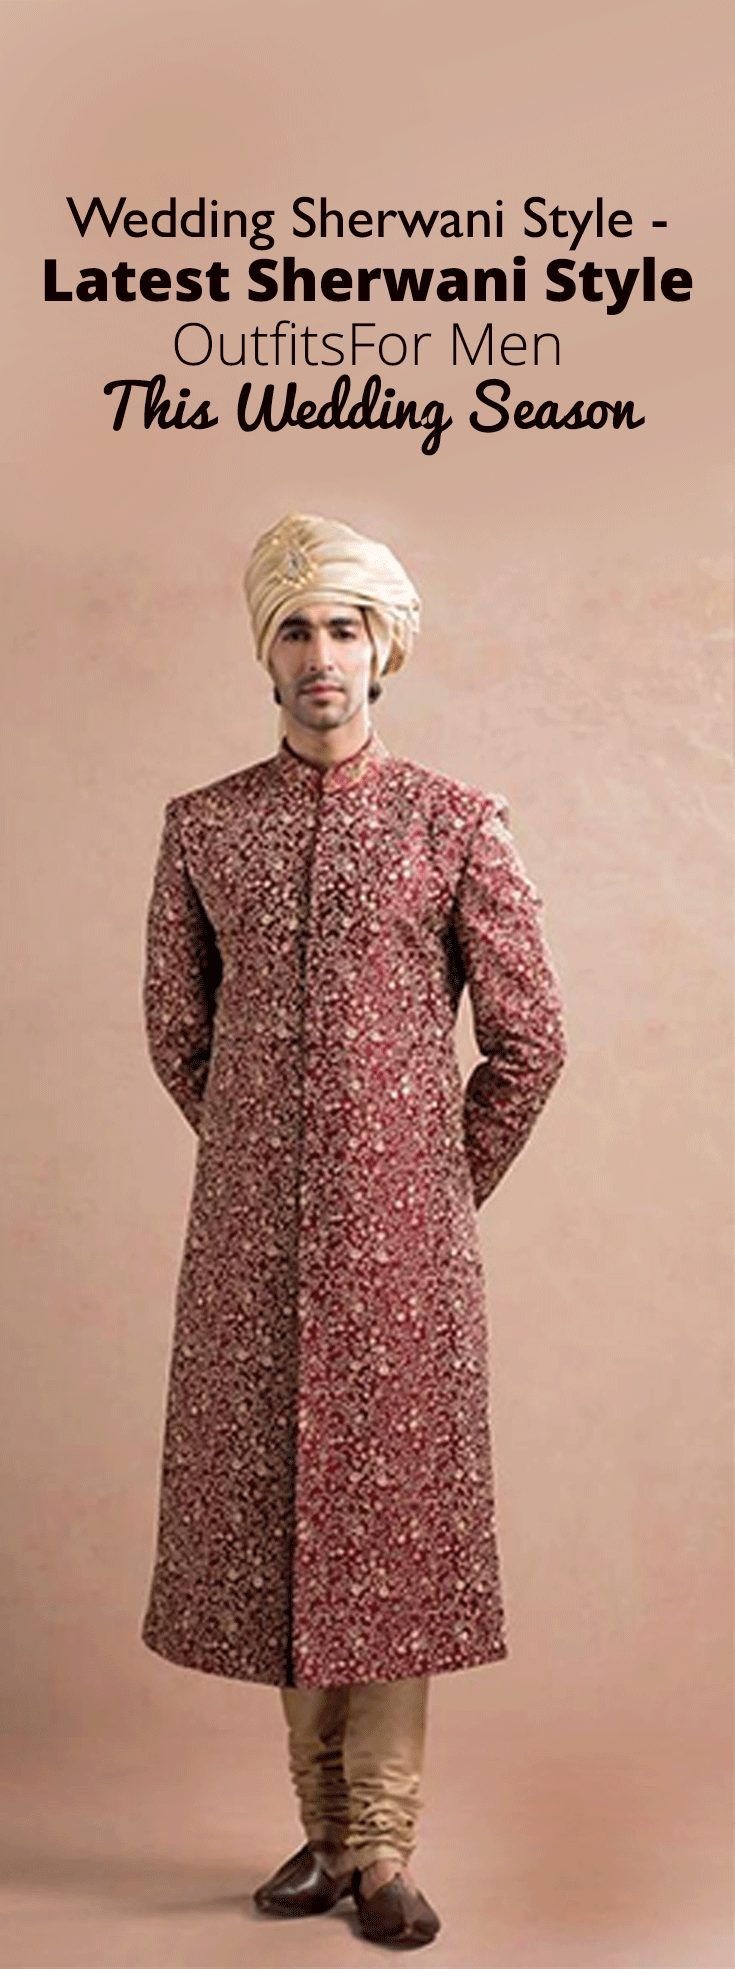 Sherwani Style Guide – Get Different Sherwani Designs & Pattern To Choose From